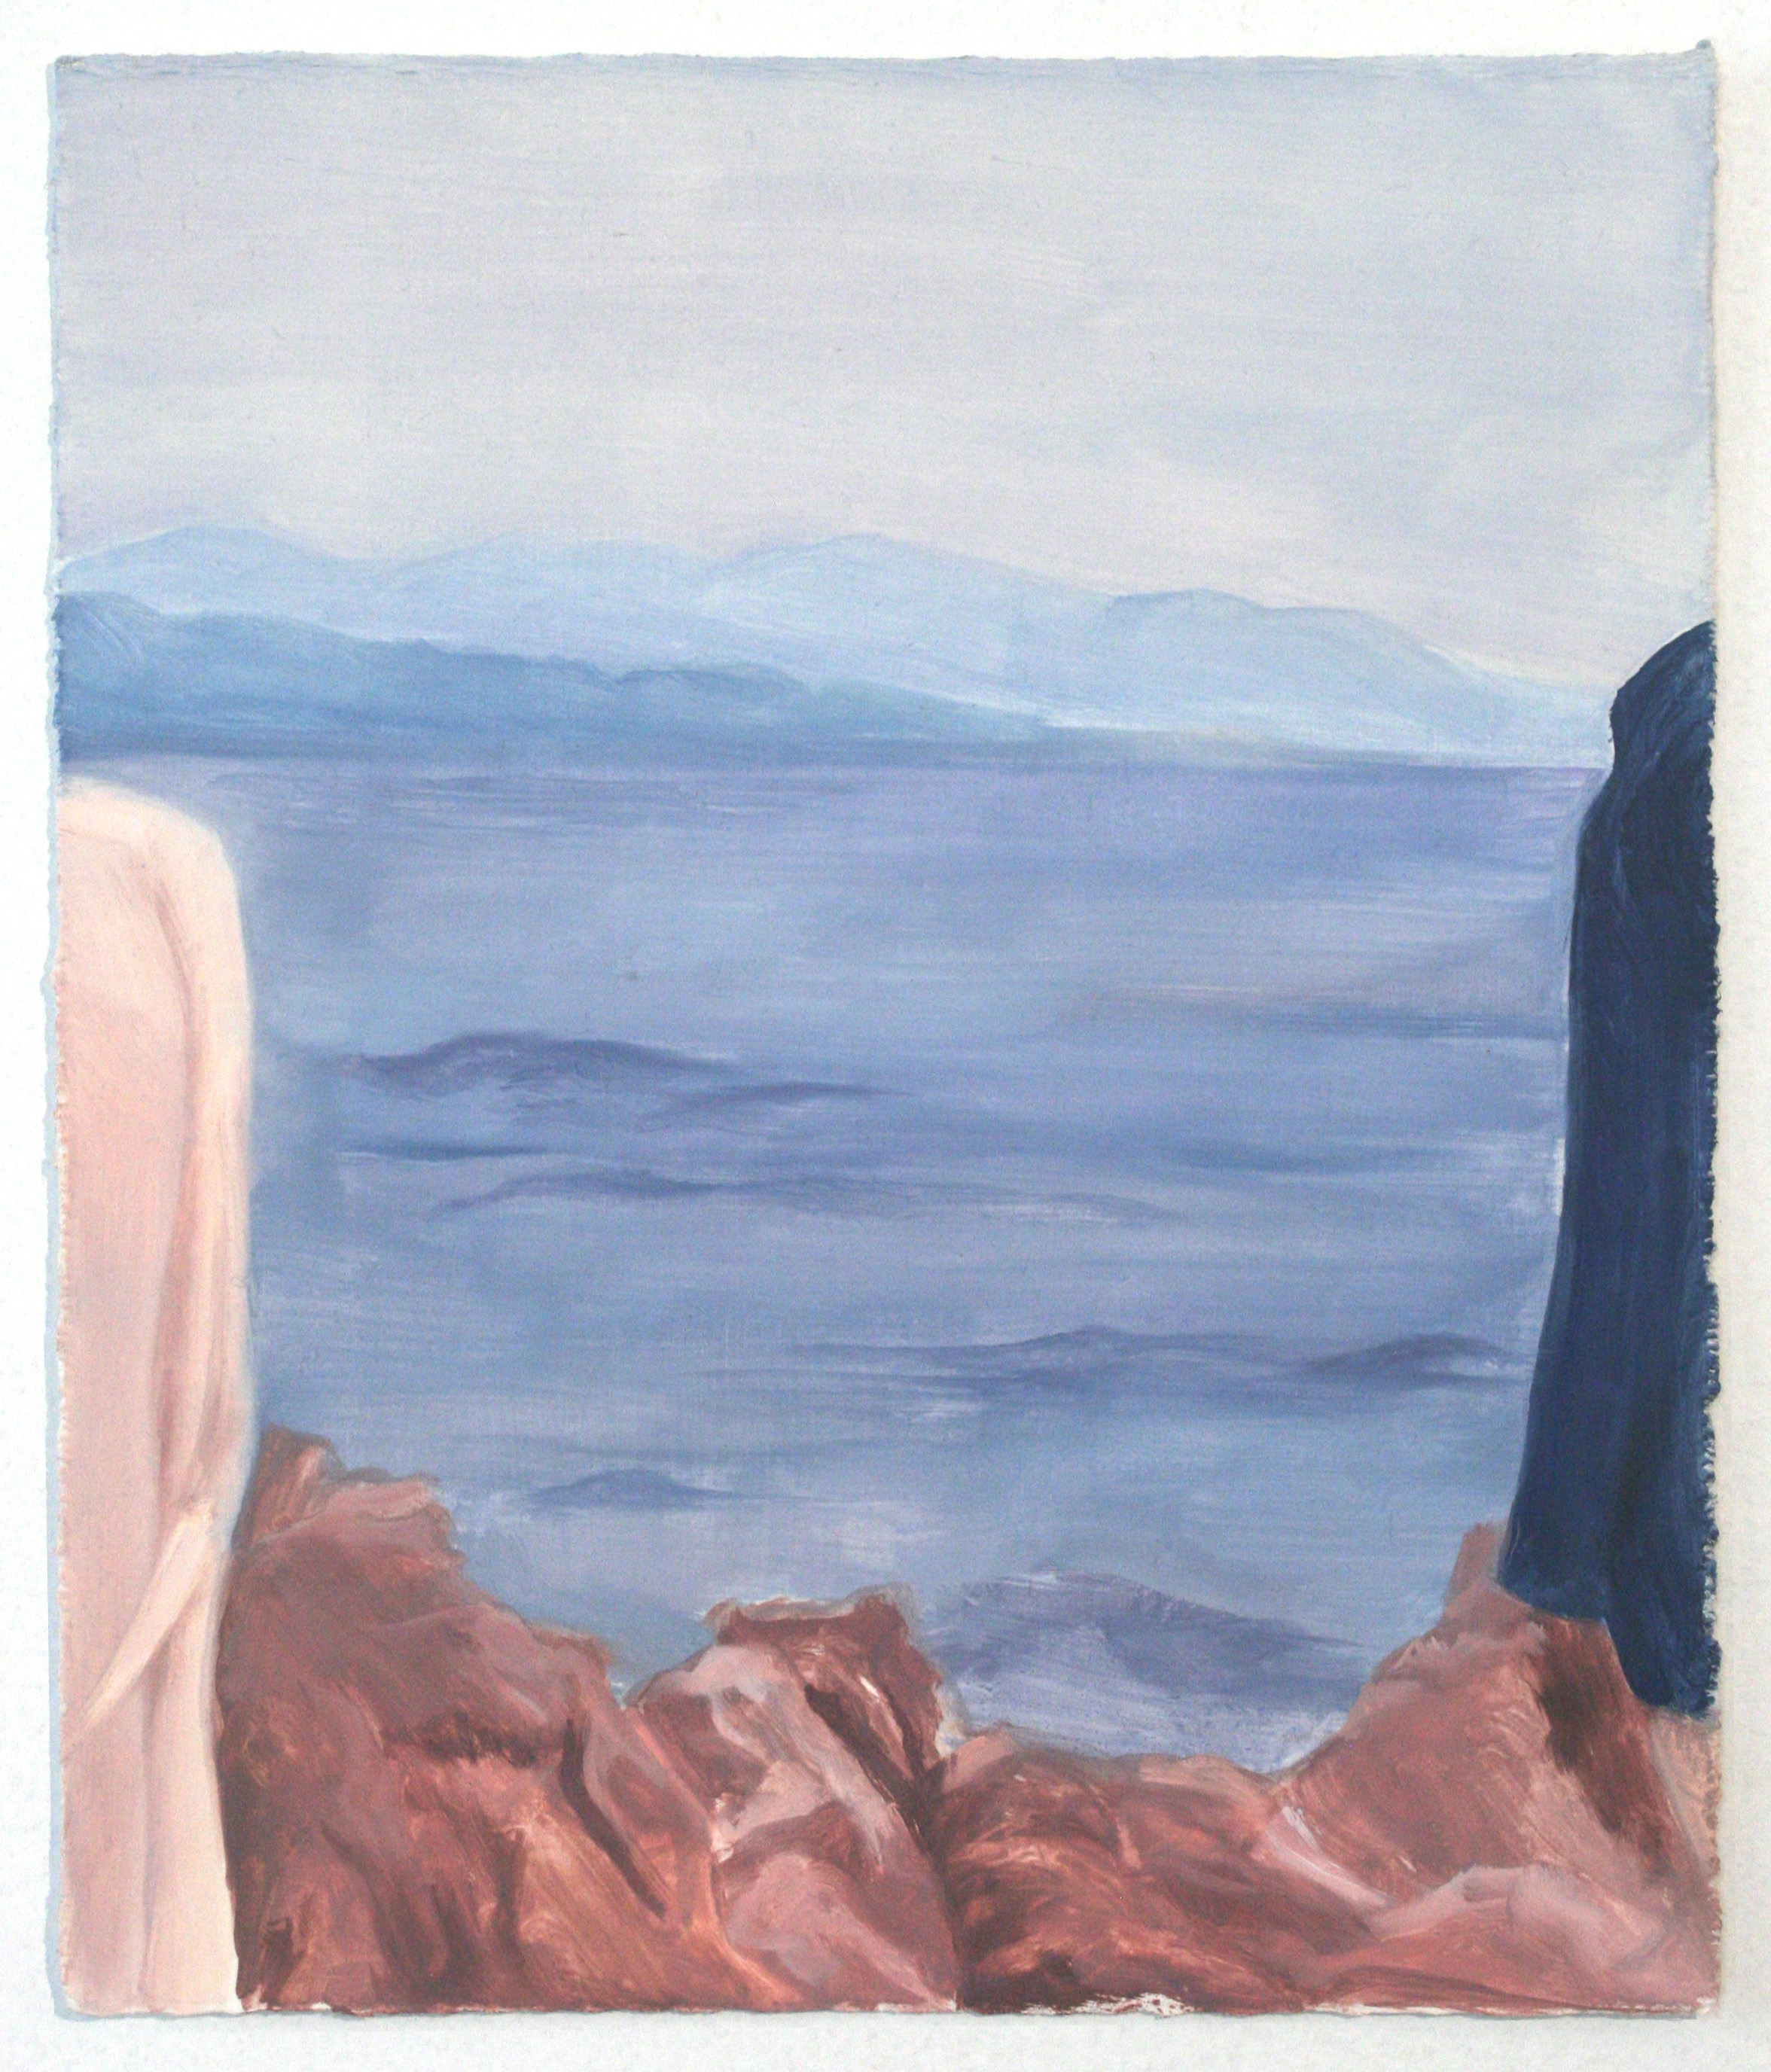 Sarah Kurz, Dusk, oil on paper, 2015, 9 1/2 x 8 inches